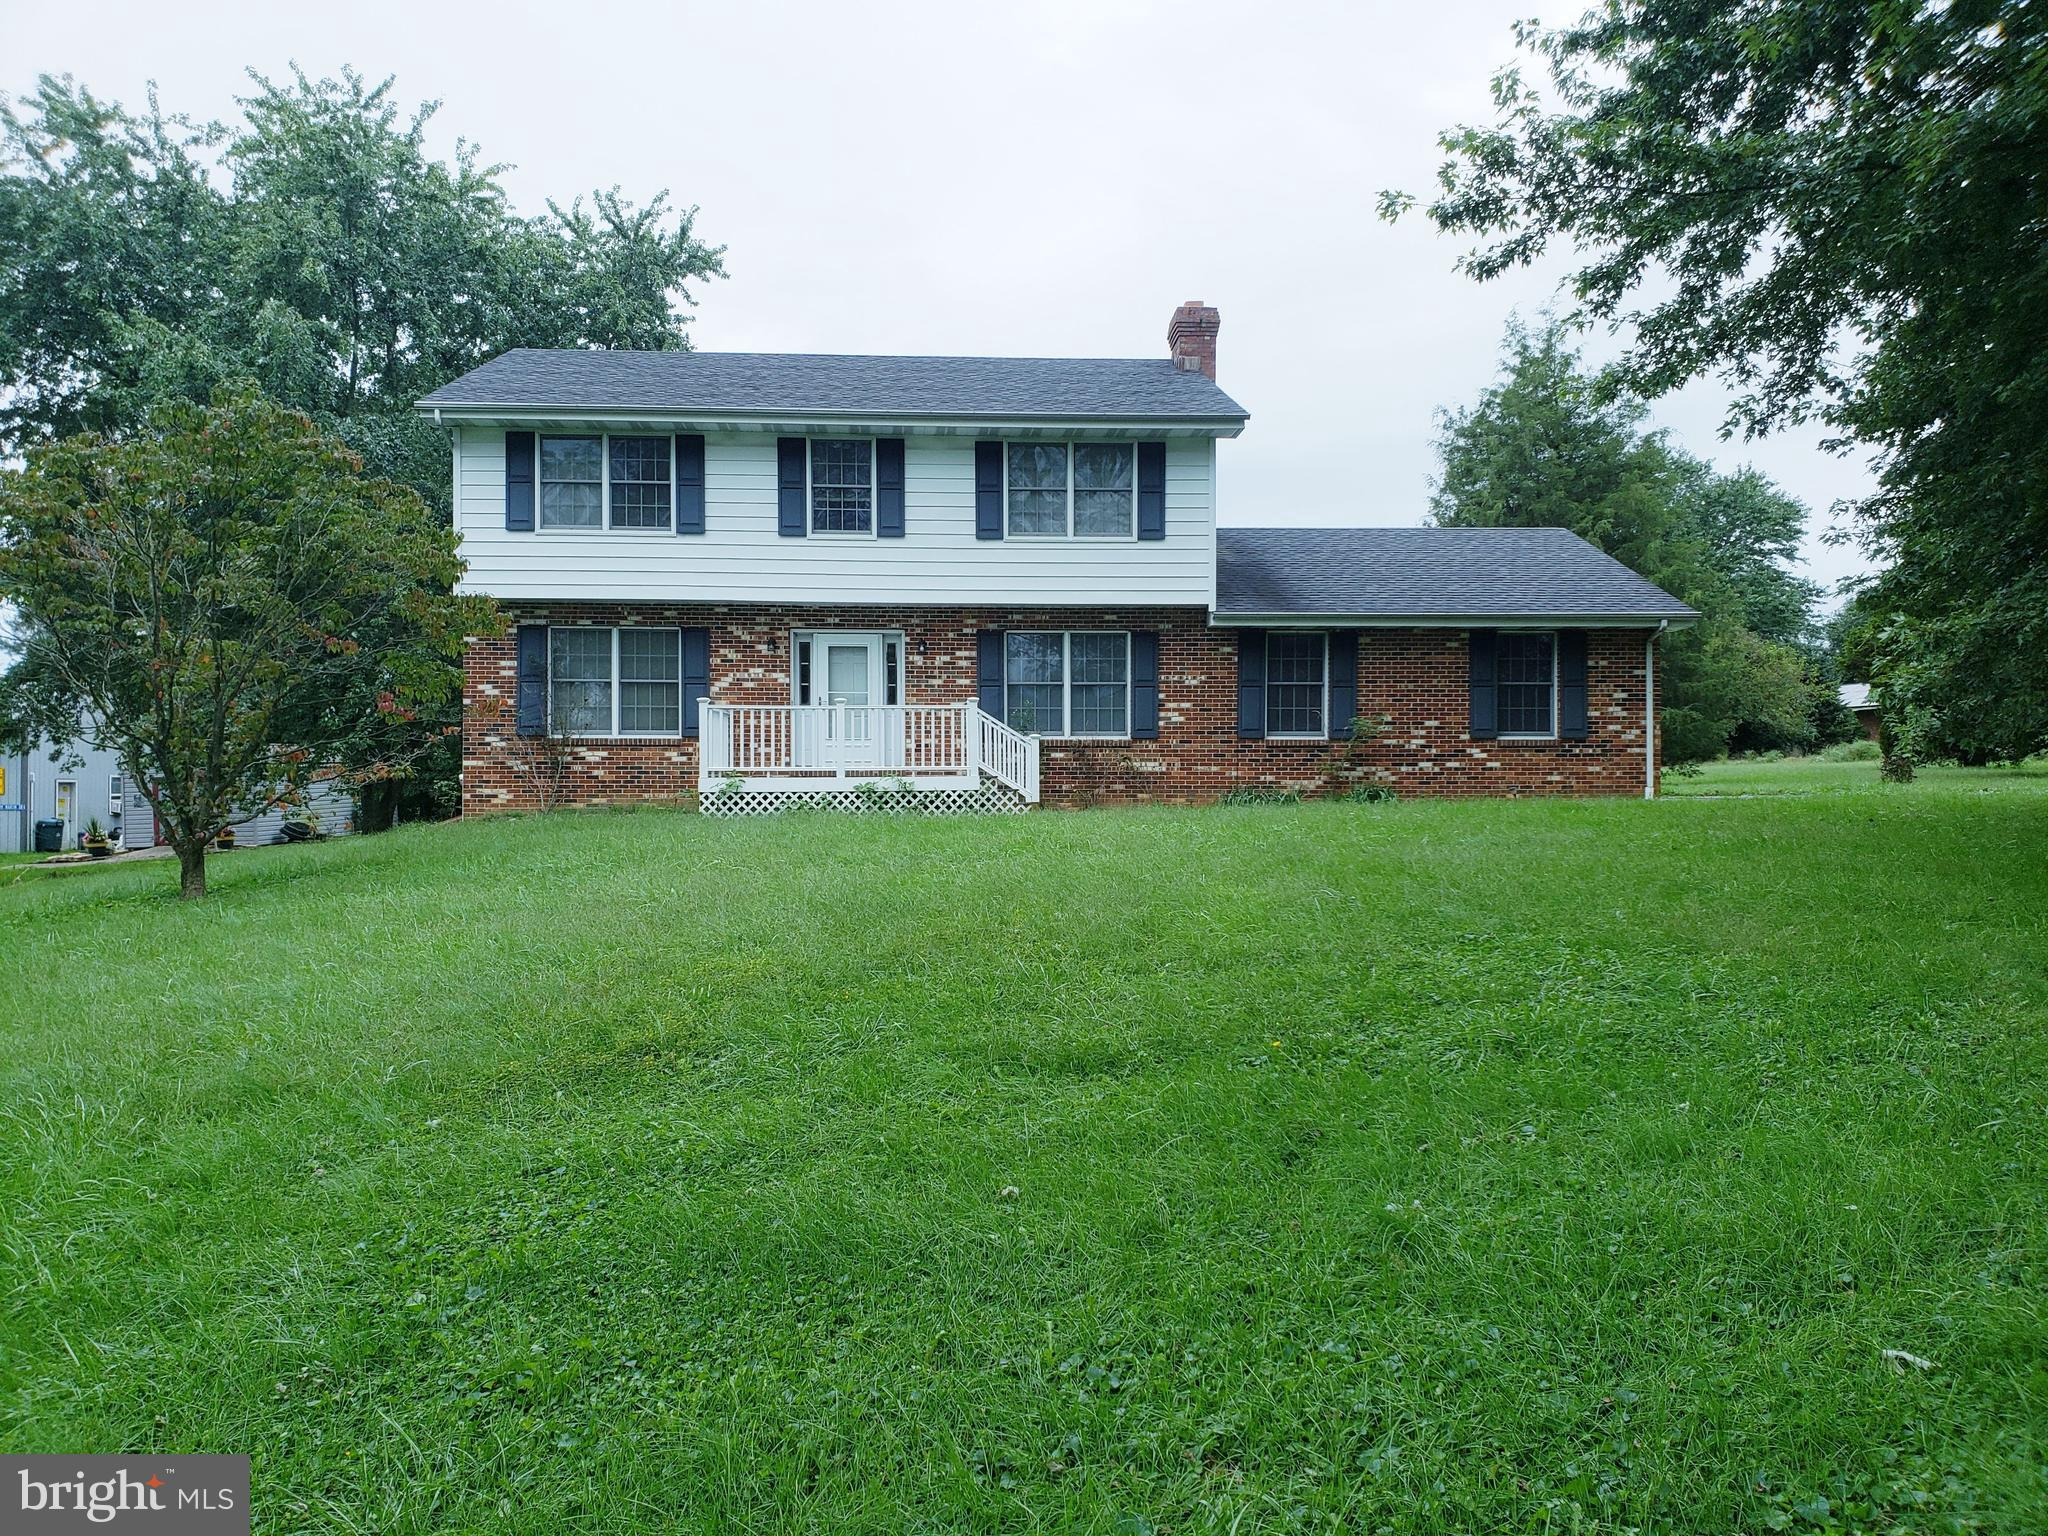 2449 TOME HIGHWAY, COLORA, MD 21917